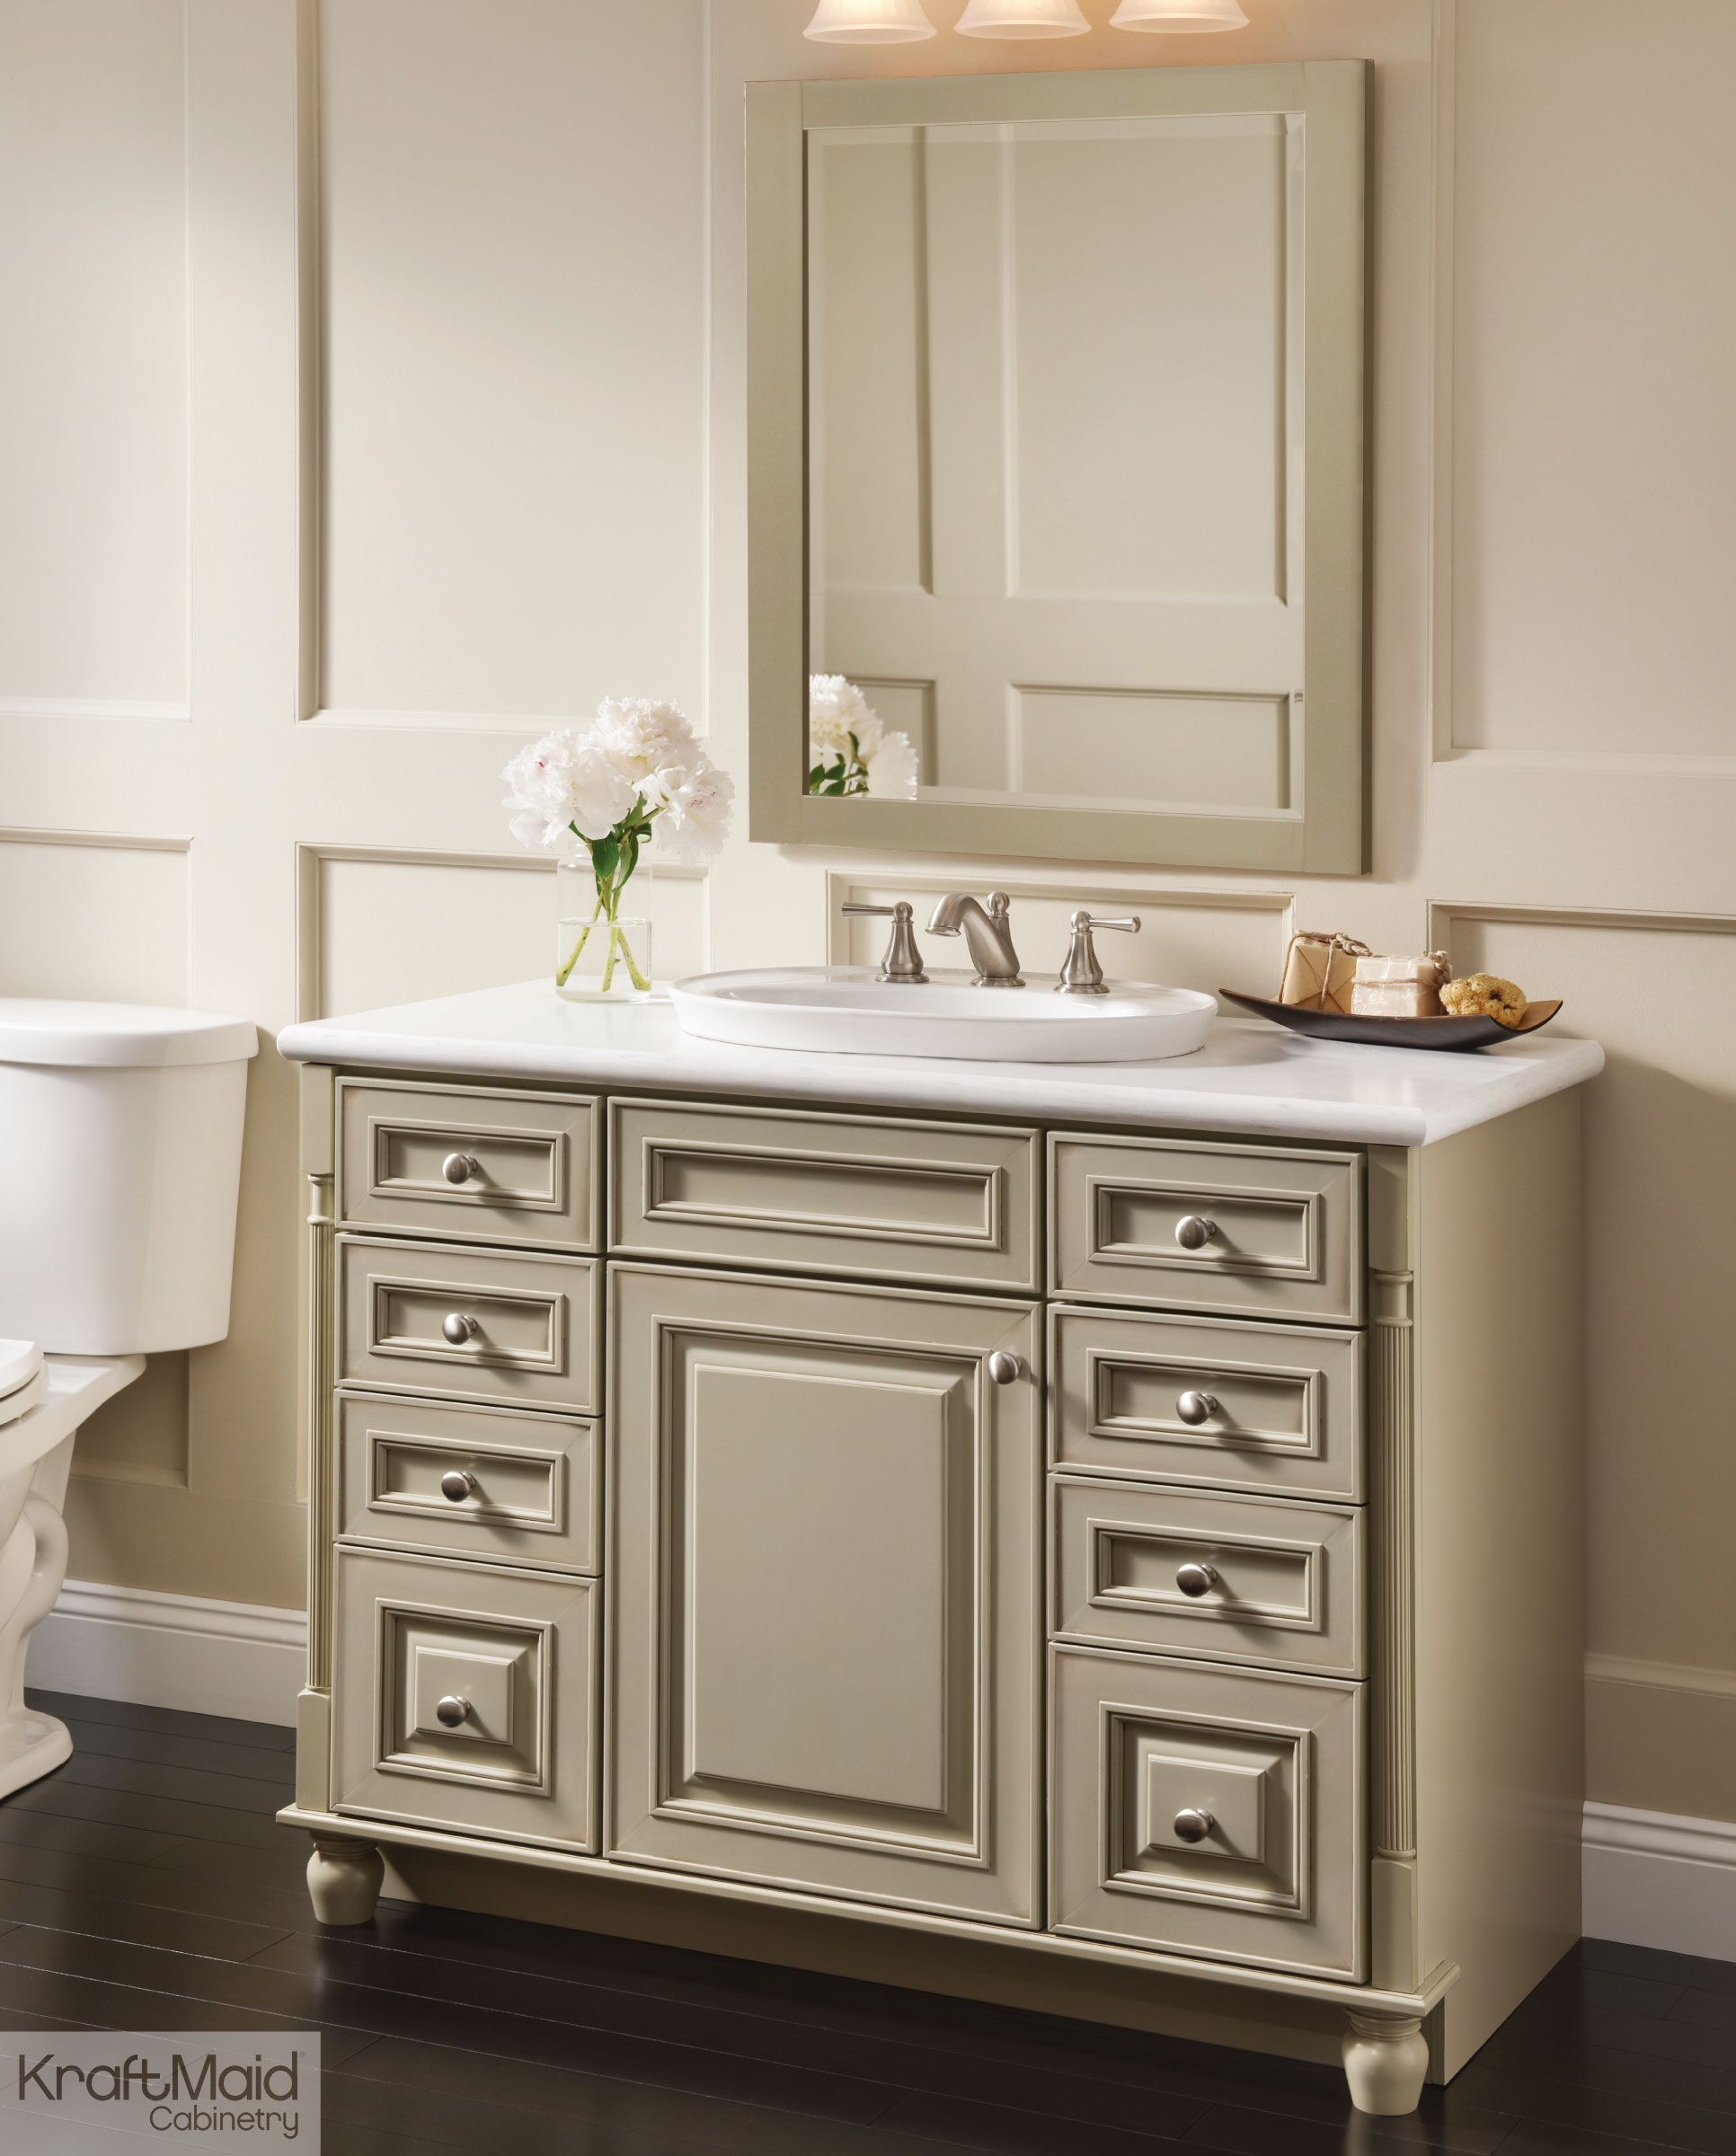 Bathroom Vanity Kraftmaid with a premium finish of willow with cocoa patina, this kraftmaid